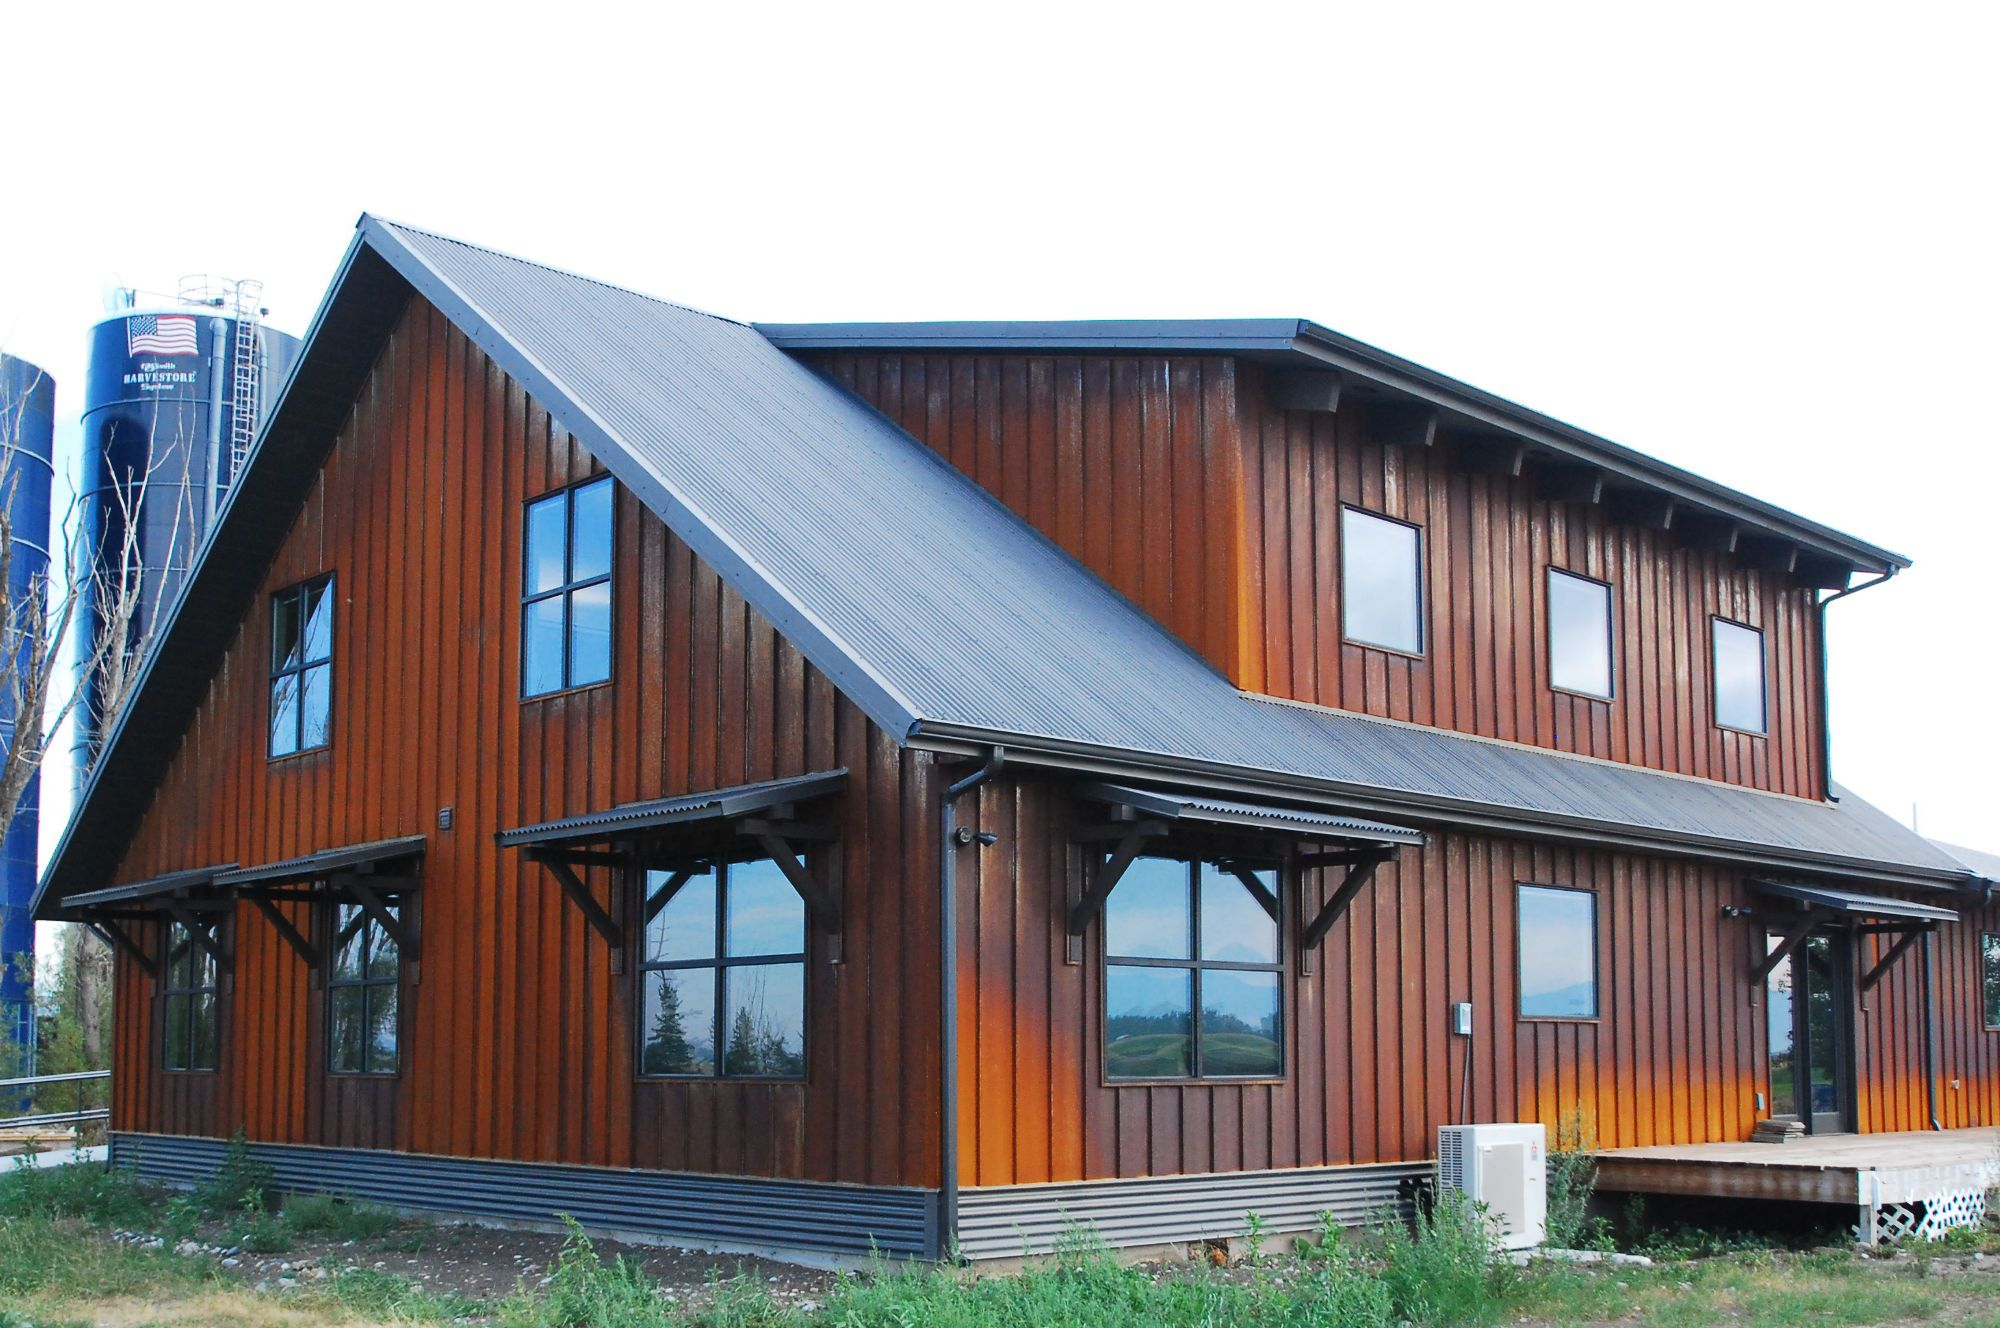 Bridger Steel Exterior Metal Siding In Small Doses This Could Be